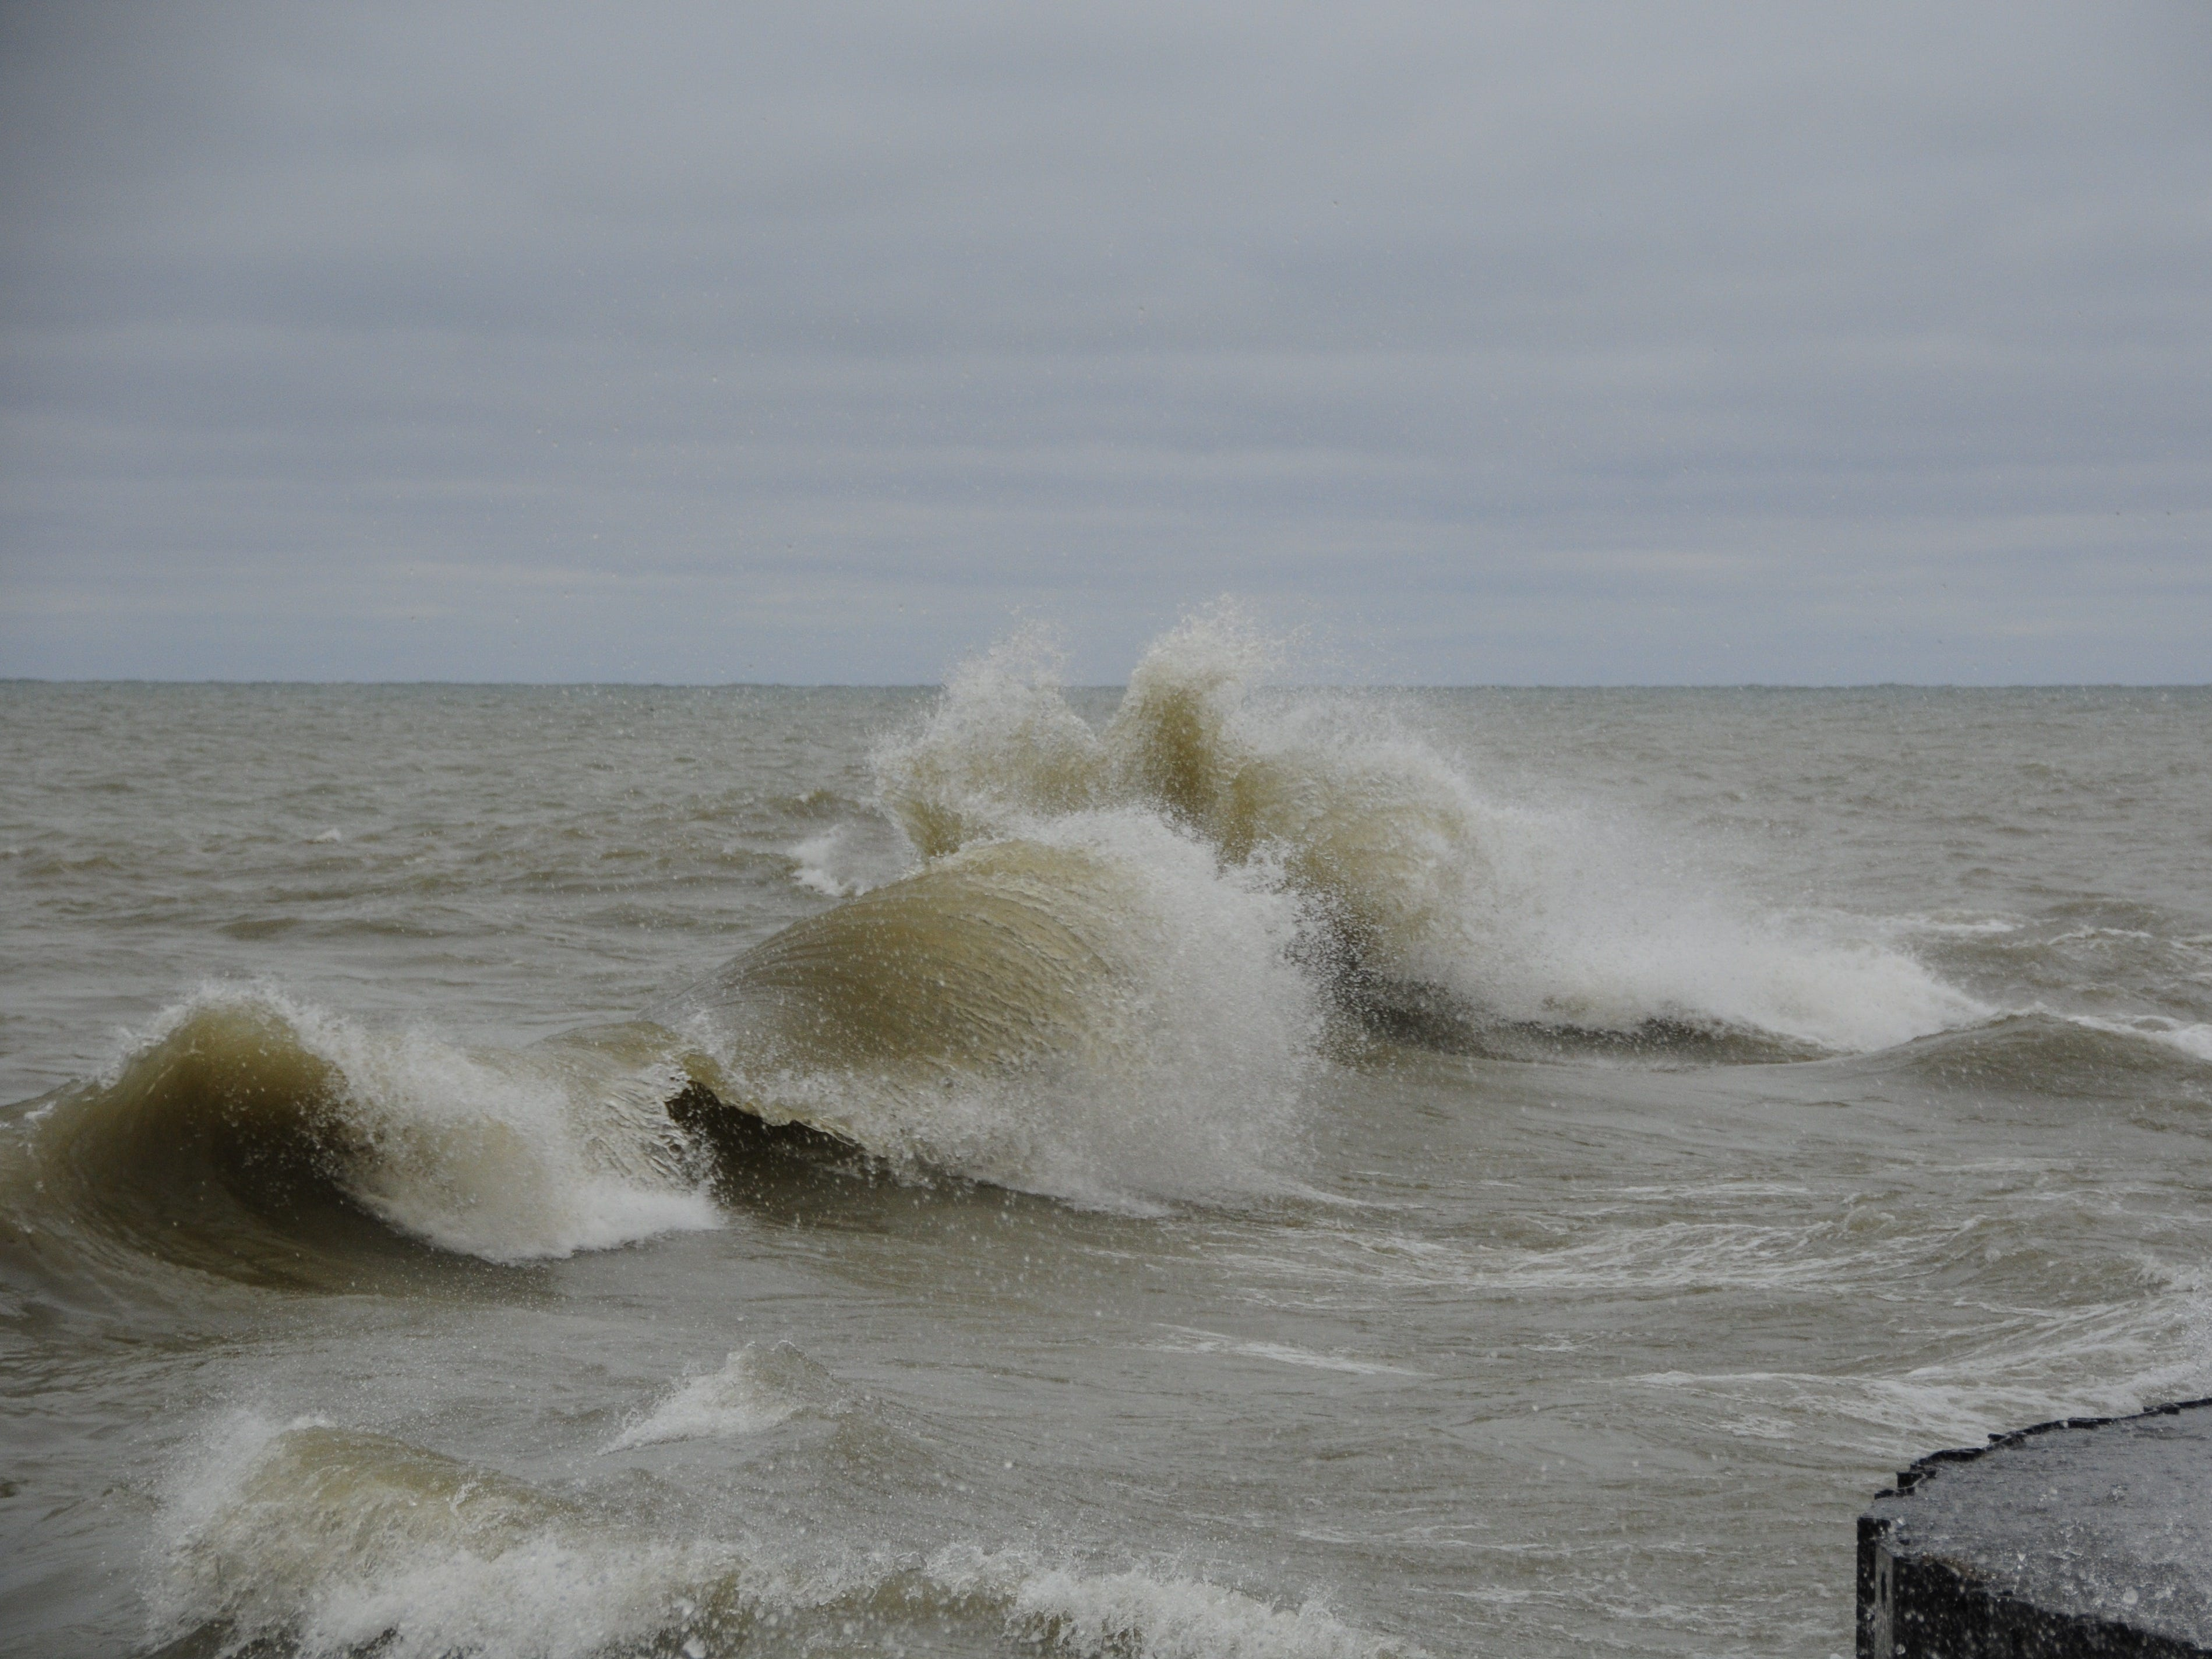 Waves boil ashore in Lake Huron near Port Sanilac on New Year's Day 2019.